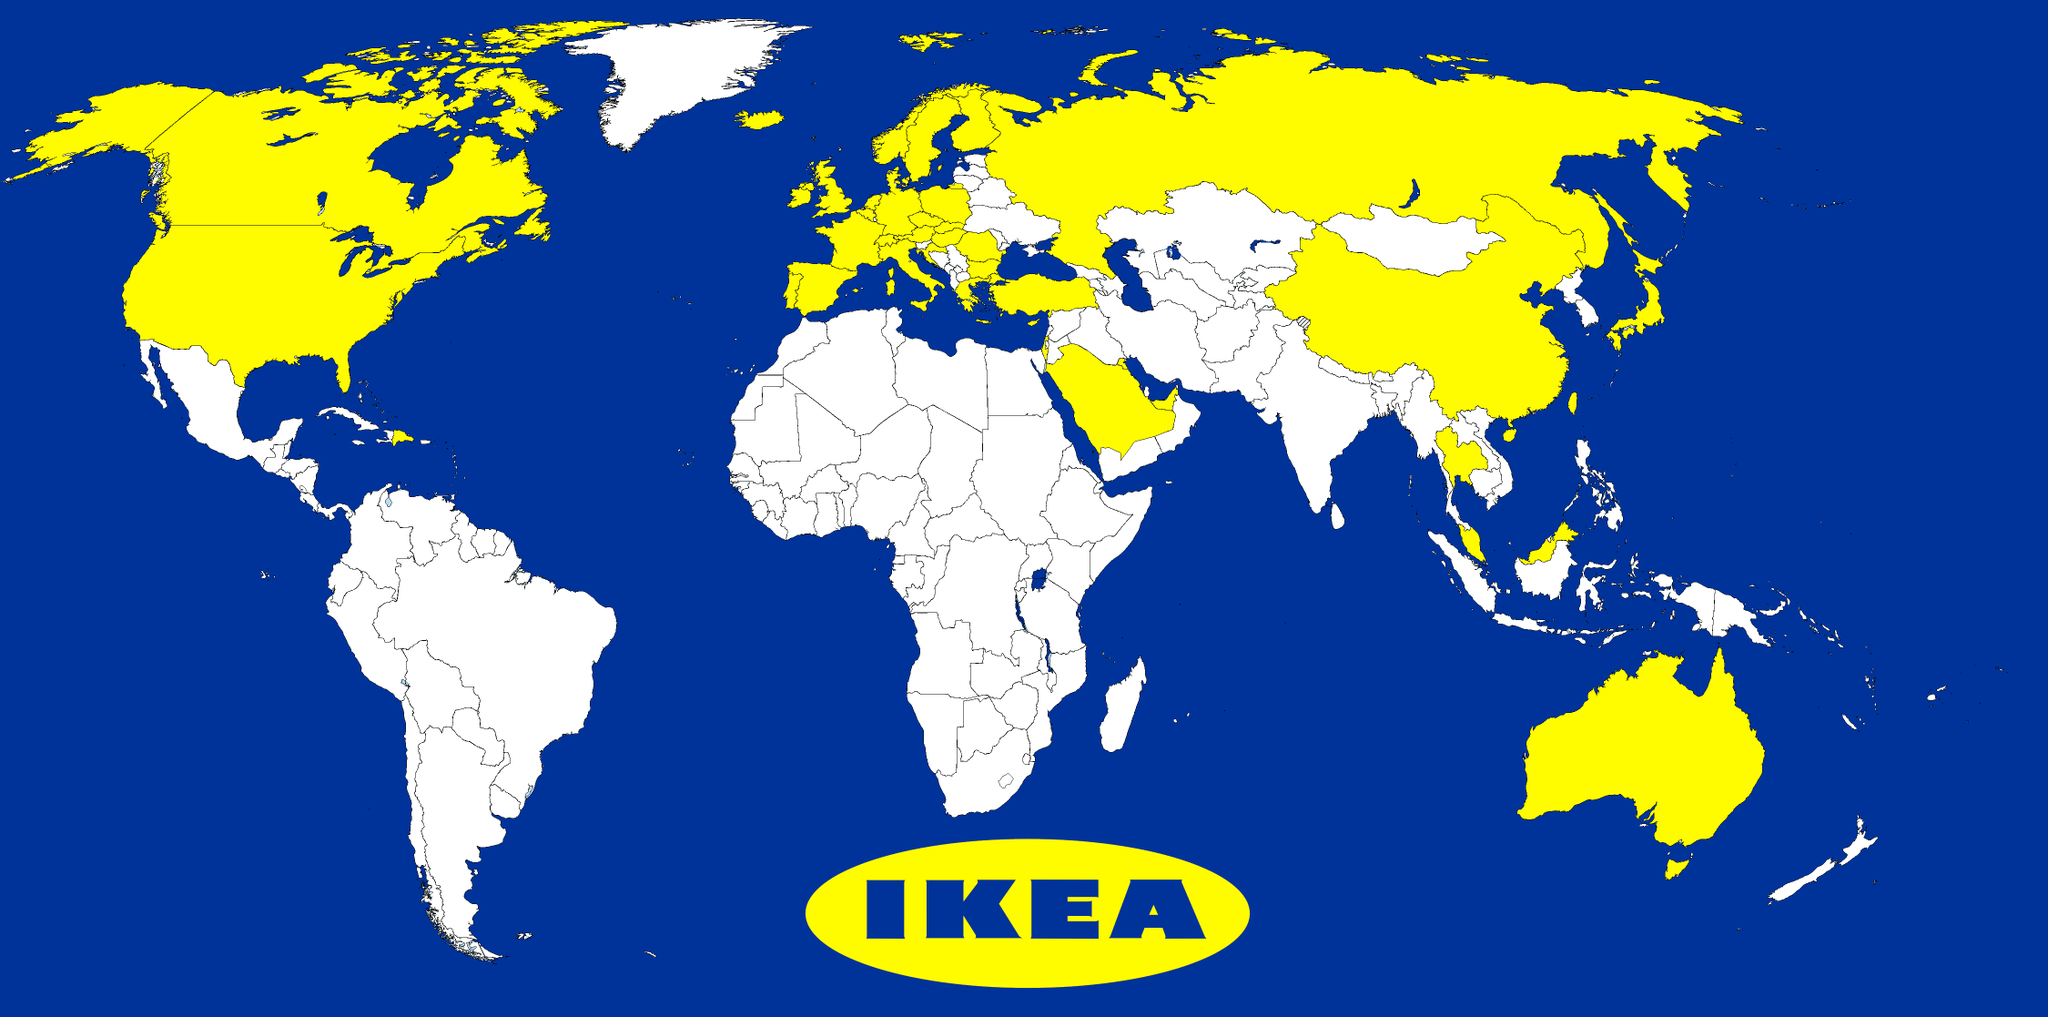 Brilliant Maps on Twitter Map of countries with an Ikea source http